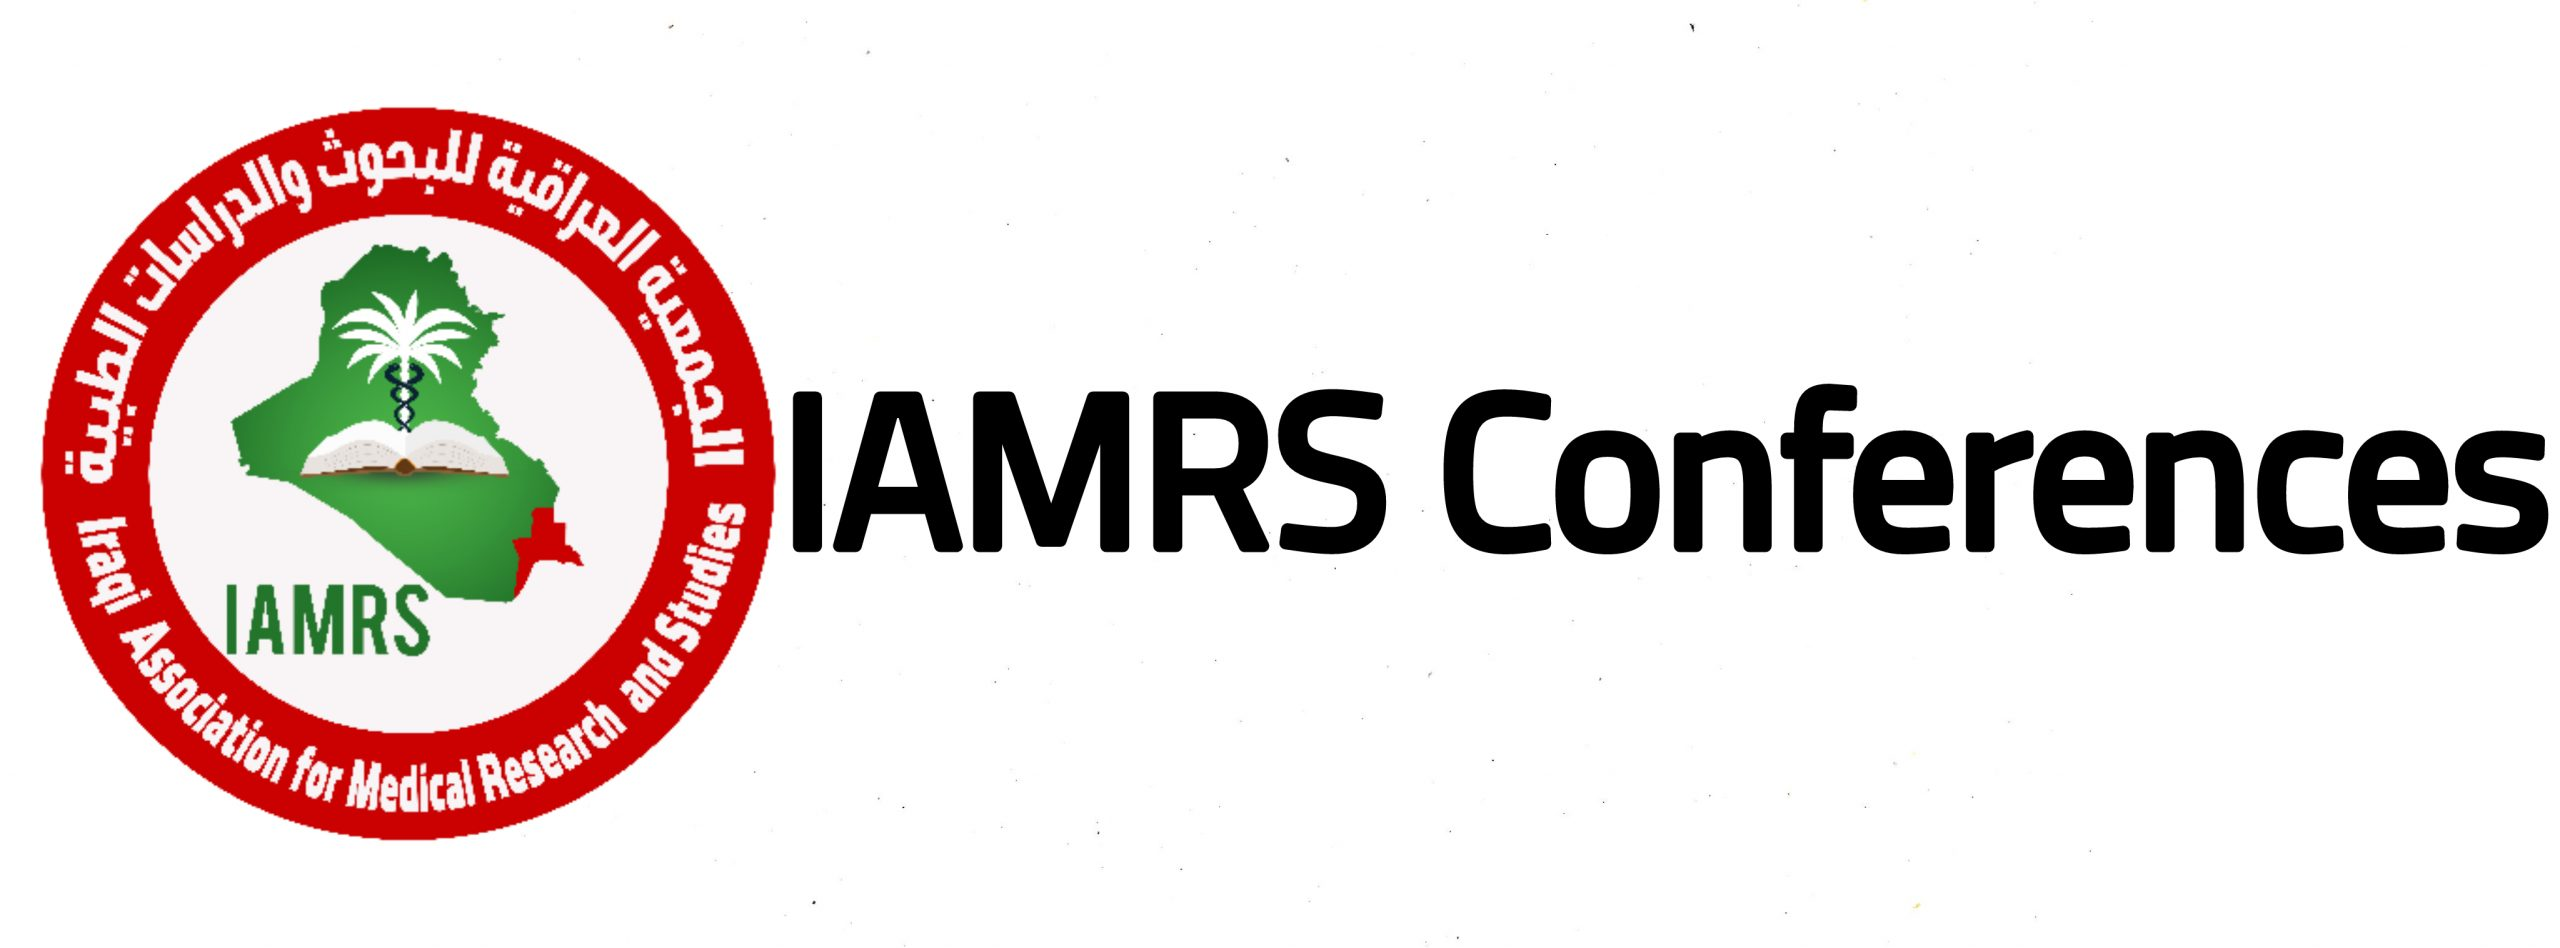 IAMRS Conferences